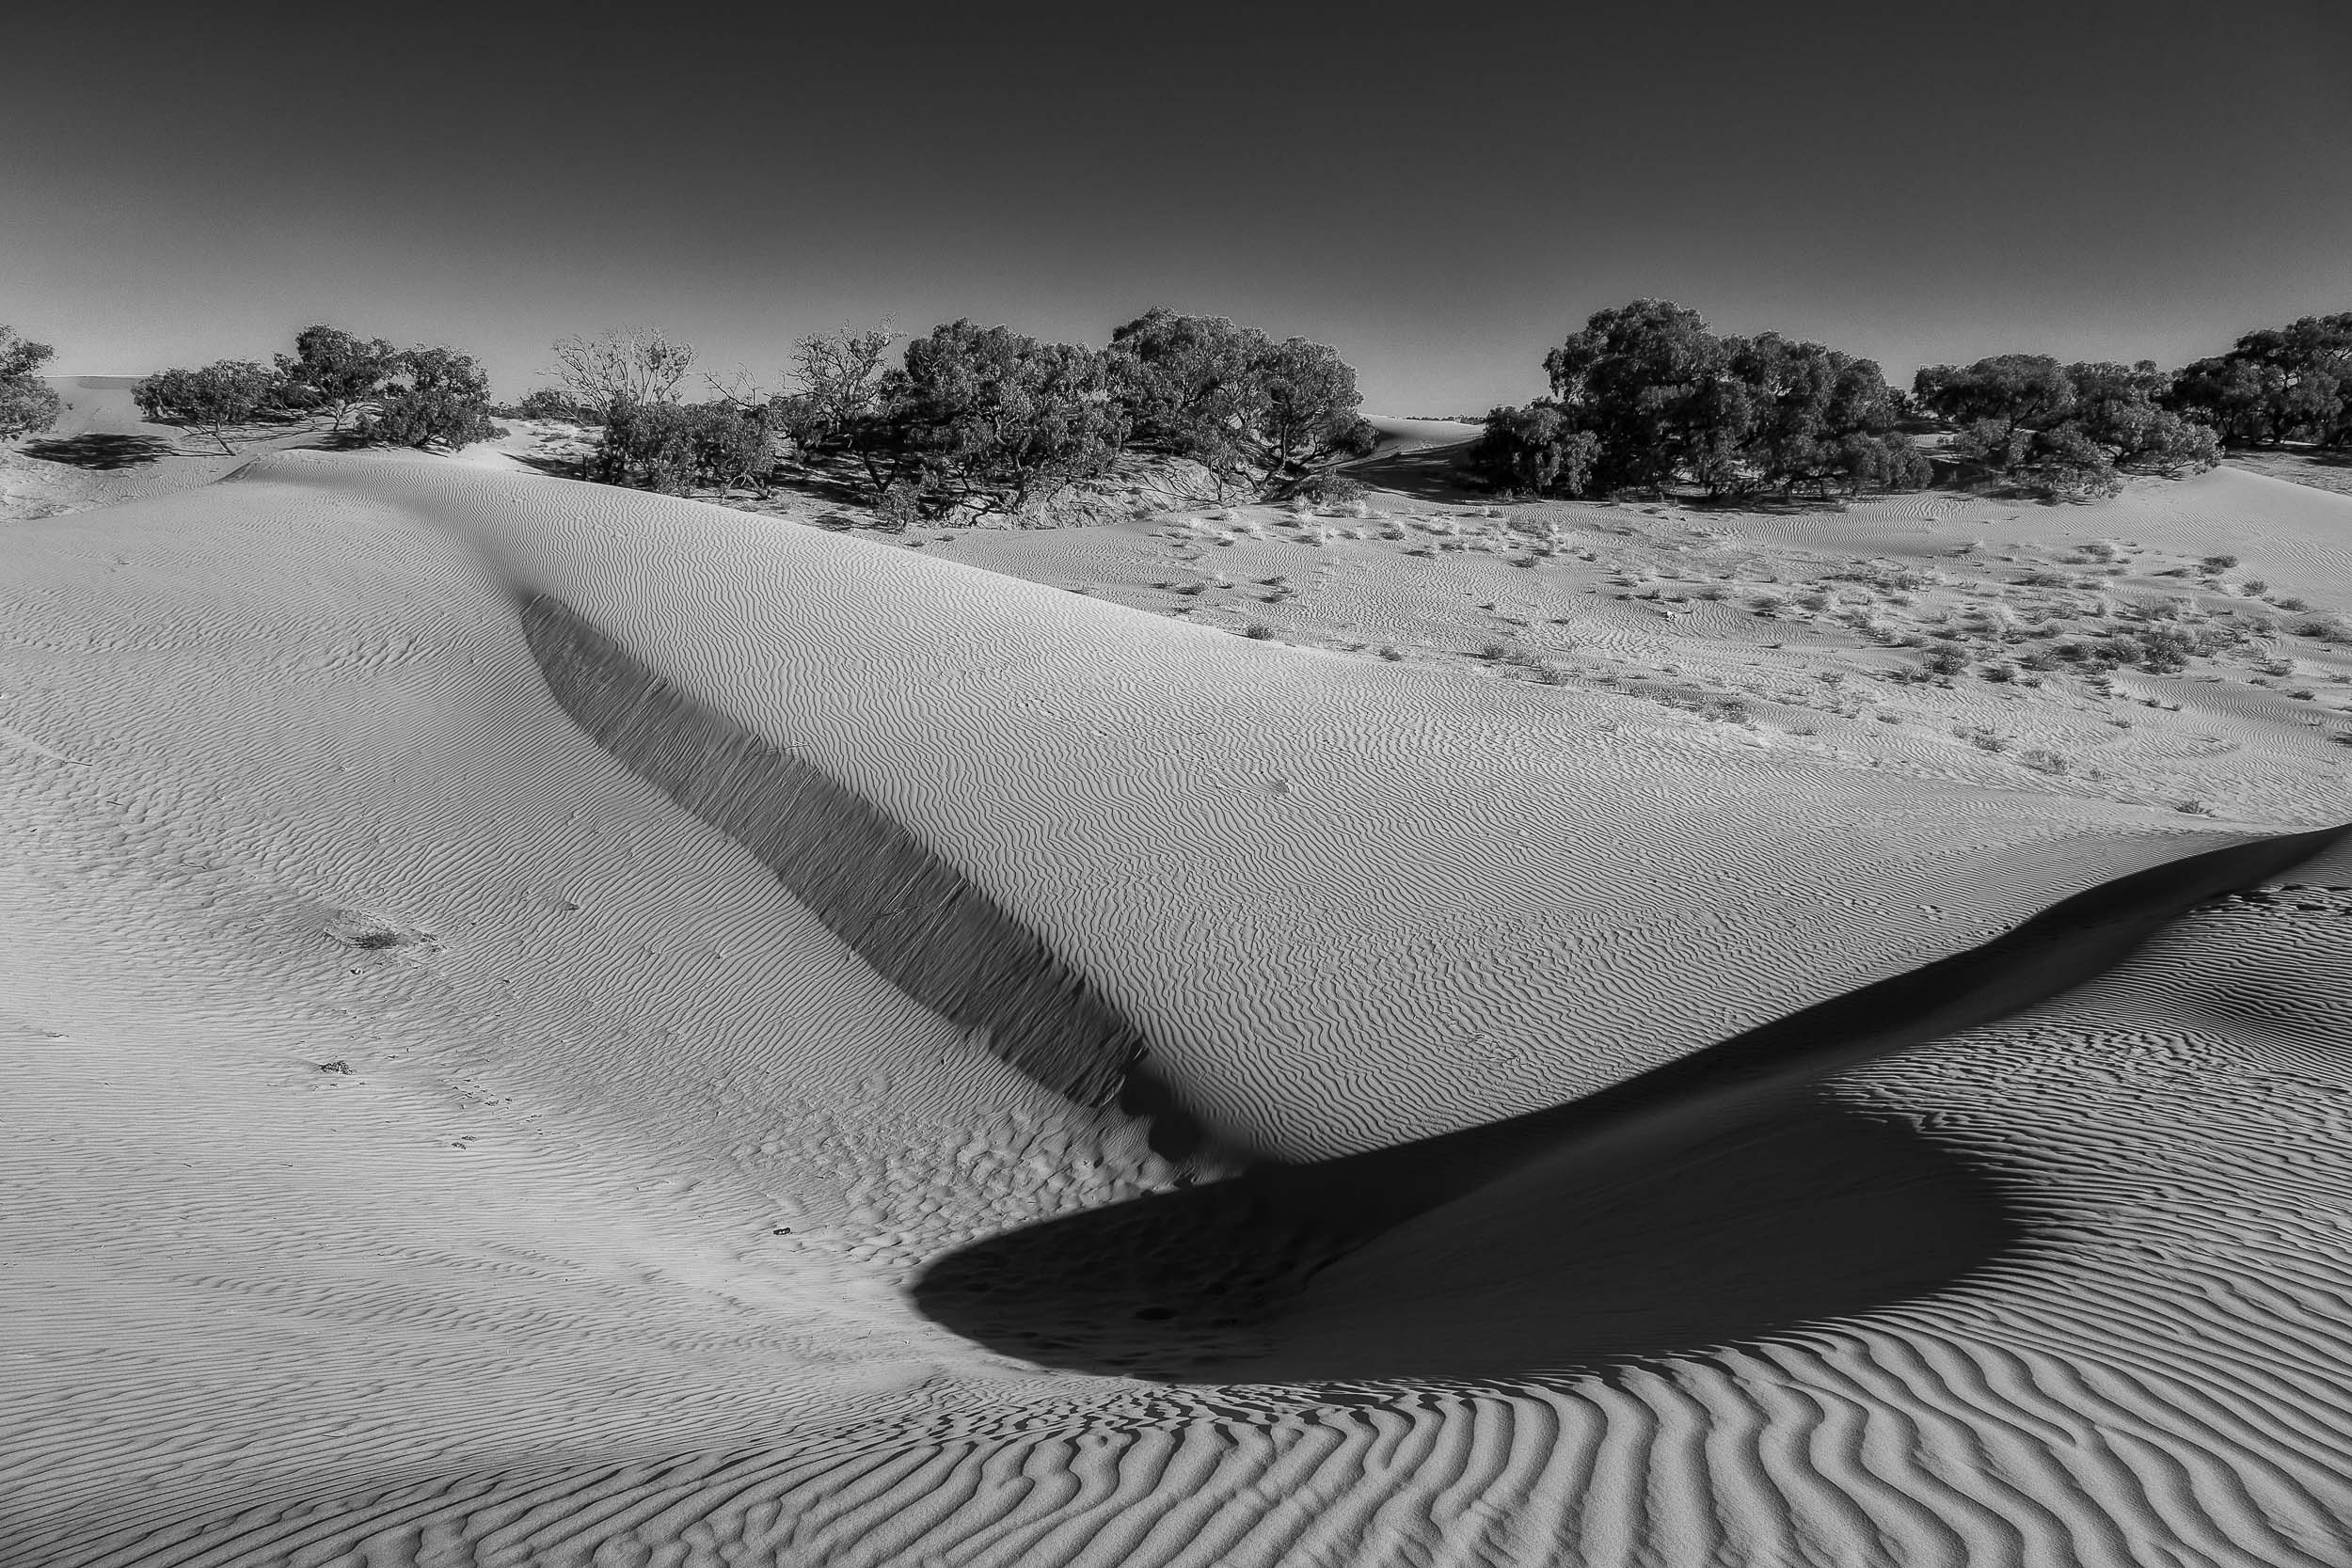 Abstract shapes and textures at the    Perry Sandhills    in South Western NSW,    Australia   .